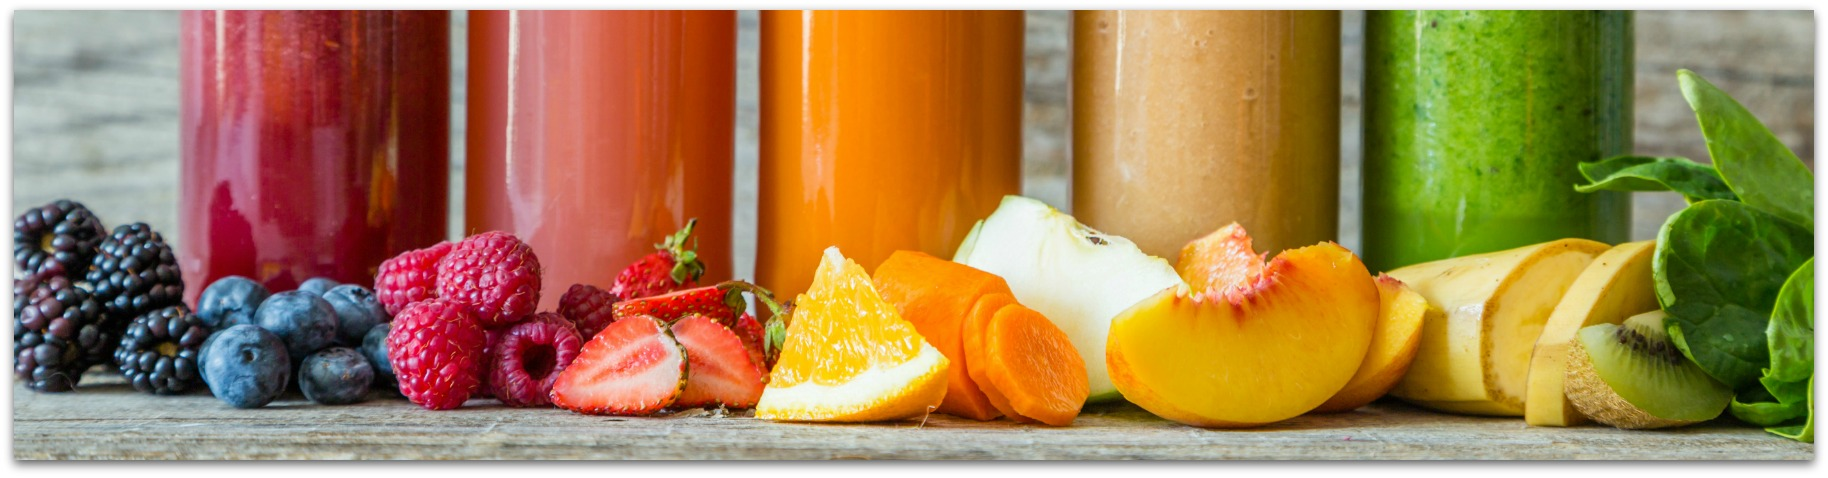 Benefits of Juicing, Juicer, Juicers, Masticating Juicer, juice